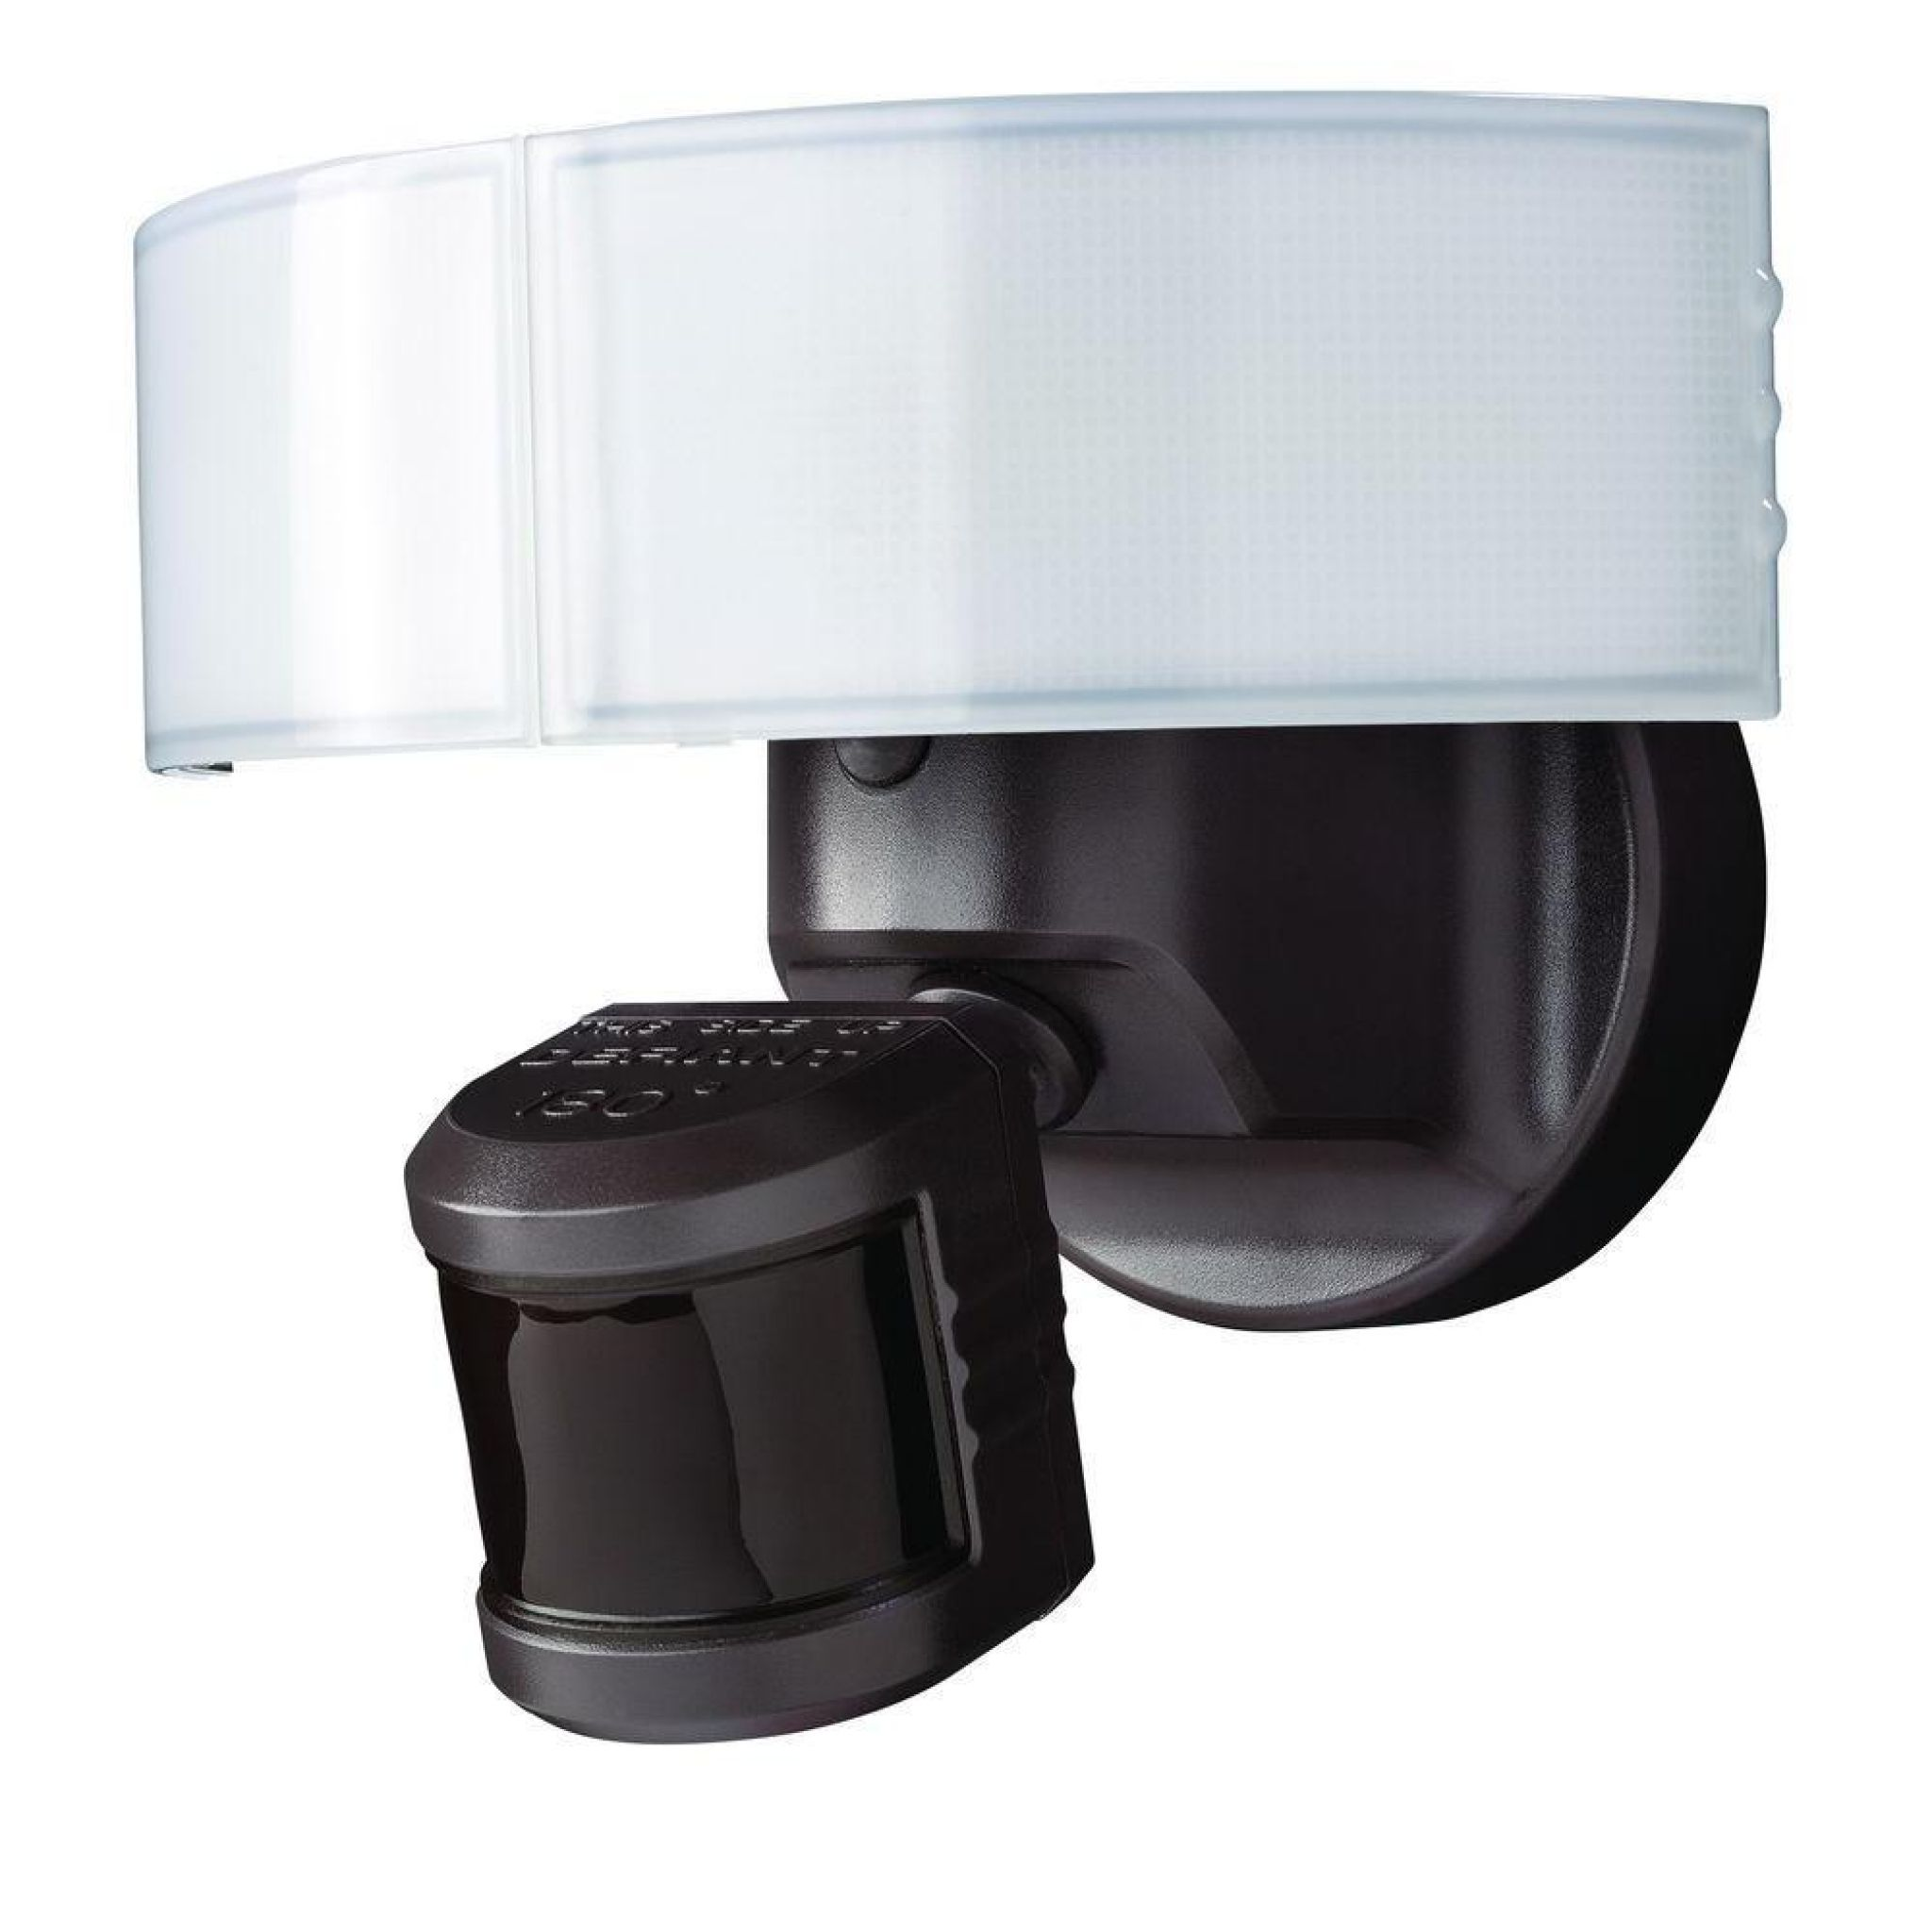 Home depot outdoor security lights what is the best interior home depot outdoor security lights what is the best interior paint check more at http aloadofball Image collections